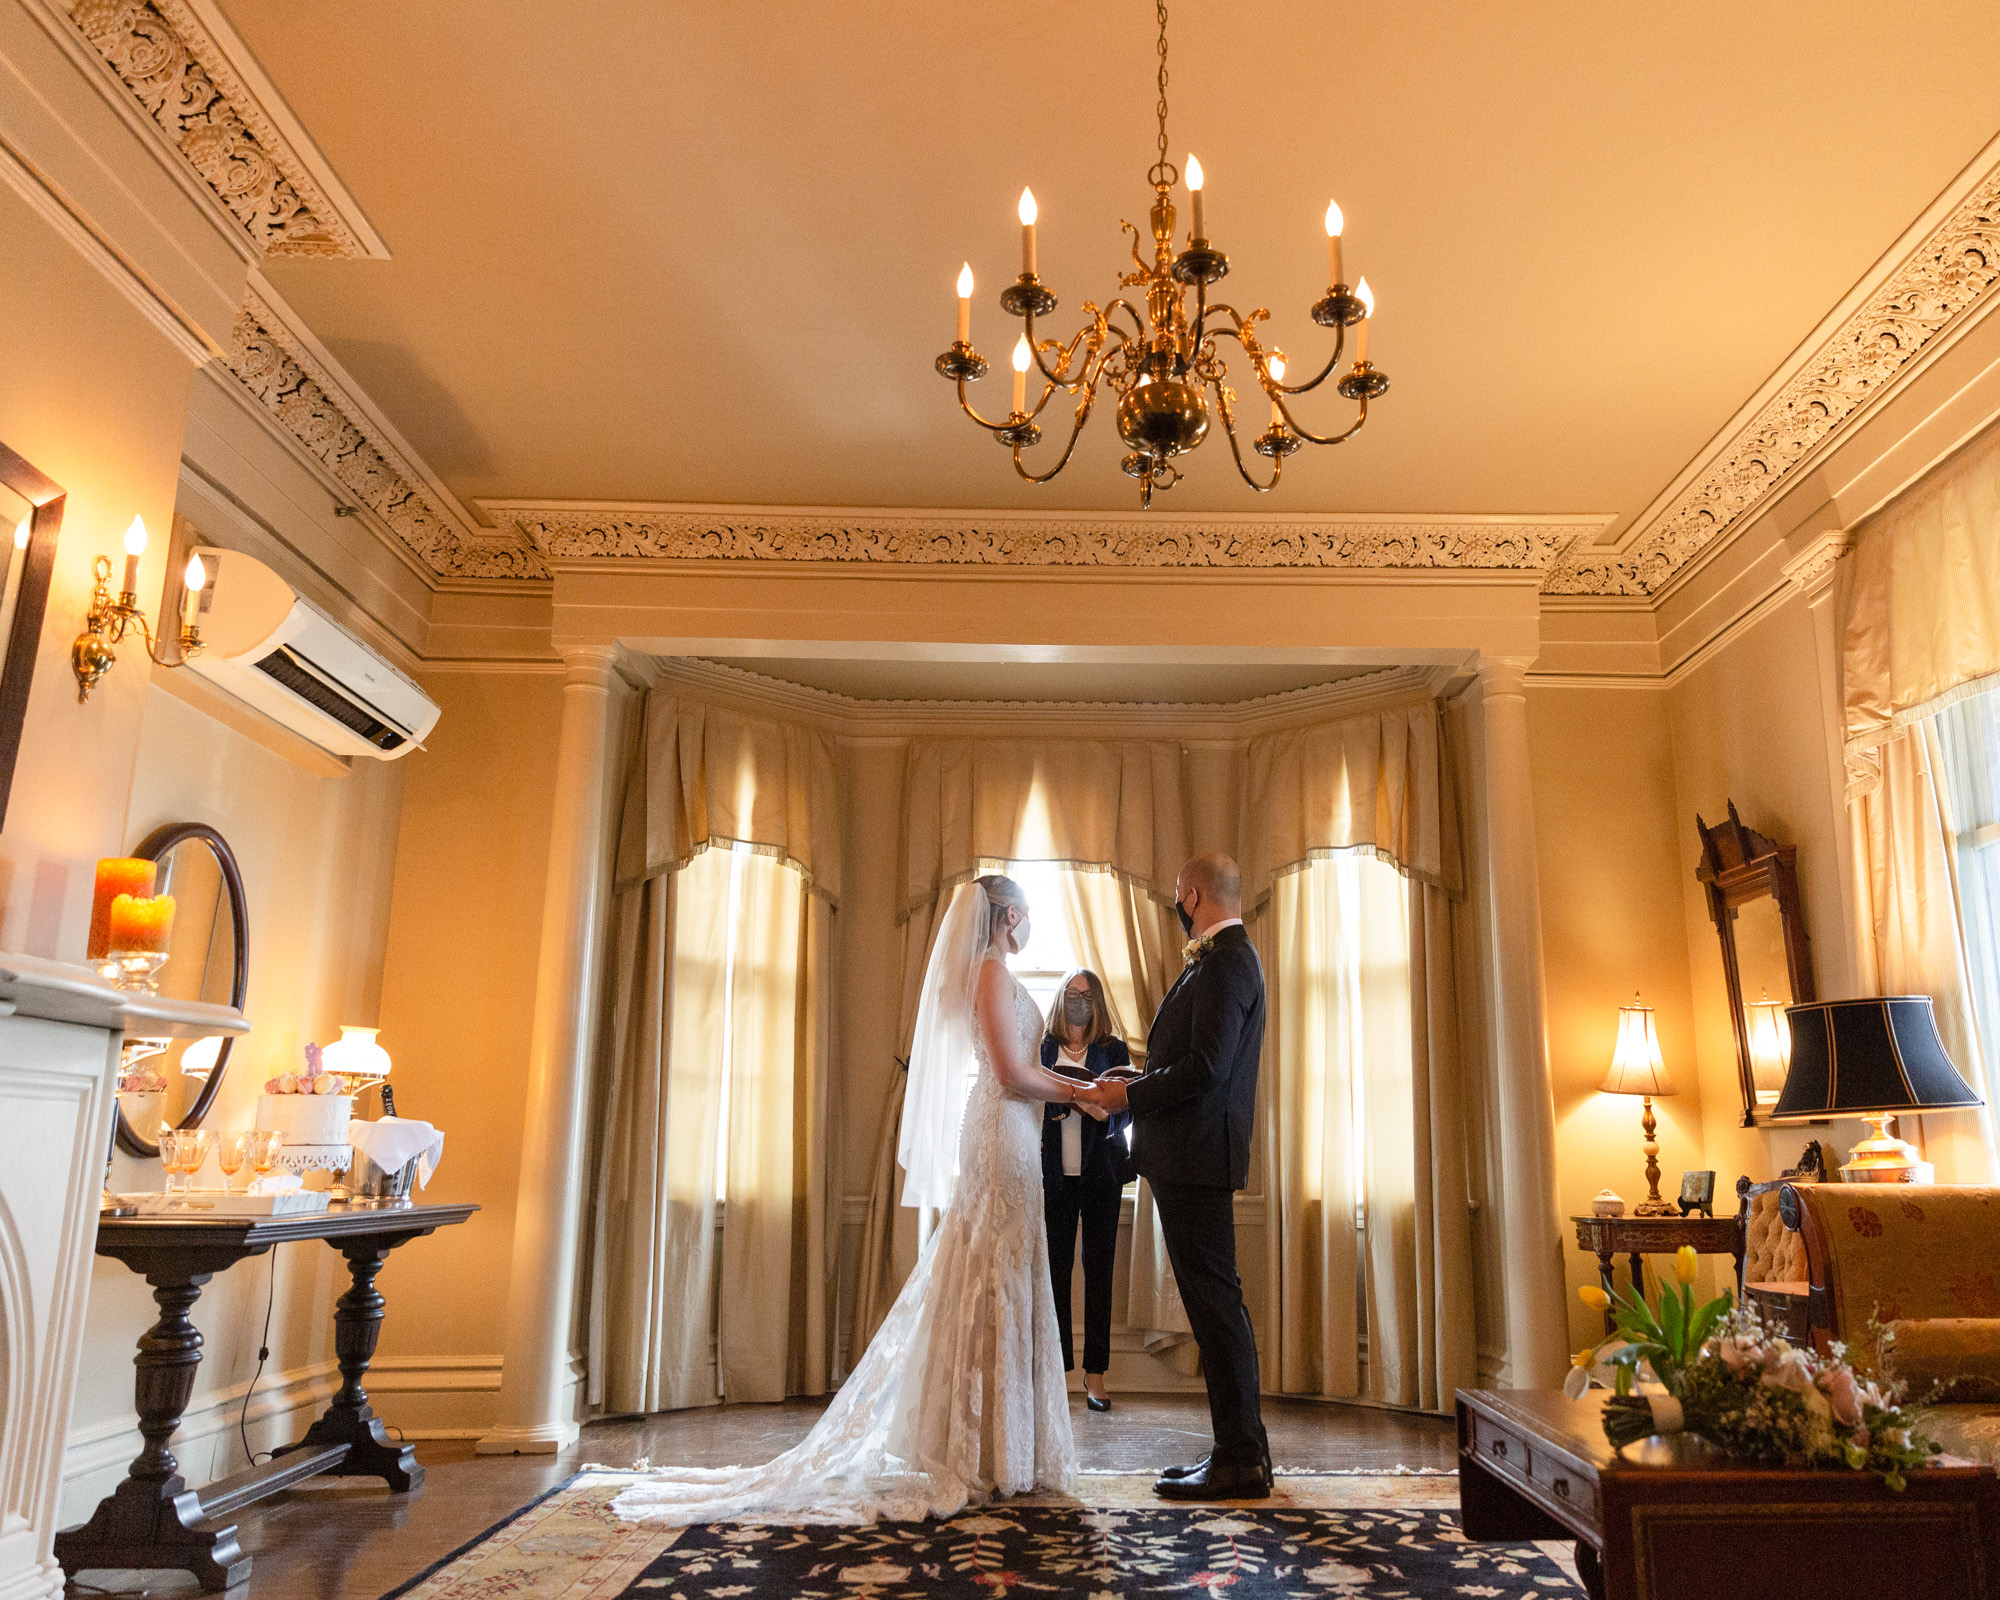 Bride and groom say their vows in the elegant historic Sayre Mansion during their wedding ceremony in Bethlehem, PA by Laura Billingham Photography